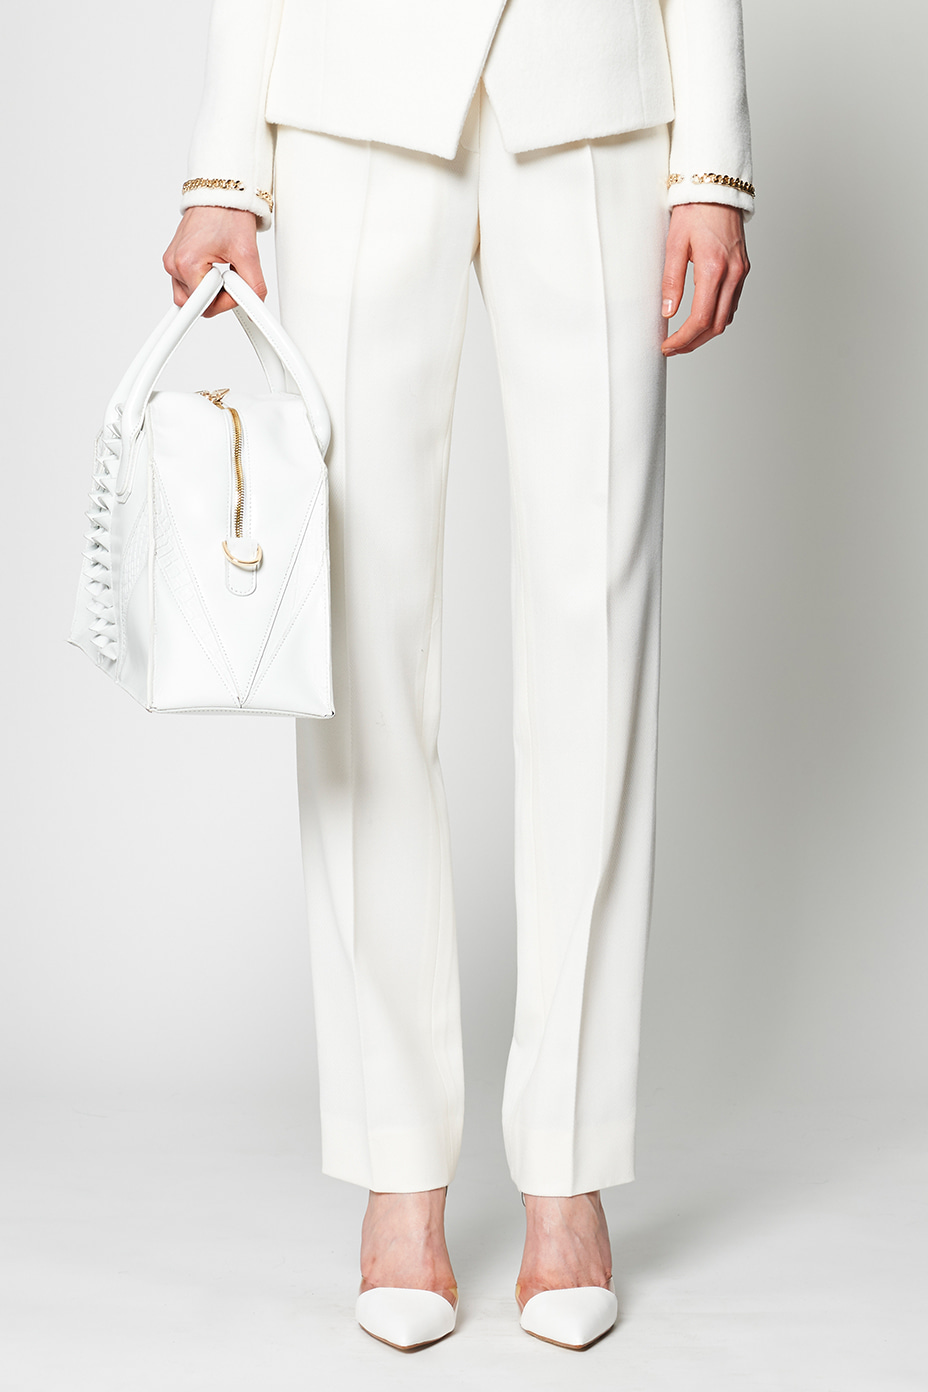 [Runway_Order Made] Noisy Classic Angora tailored trouser